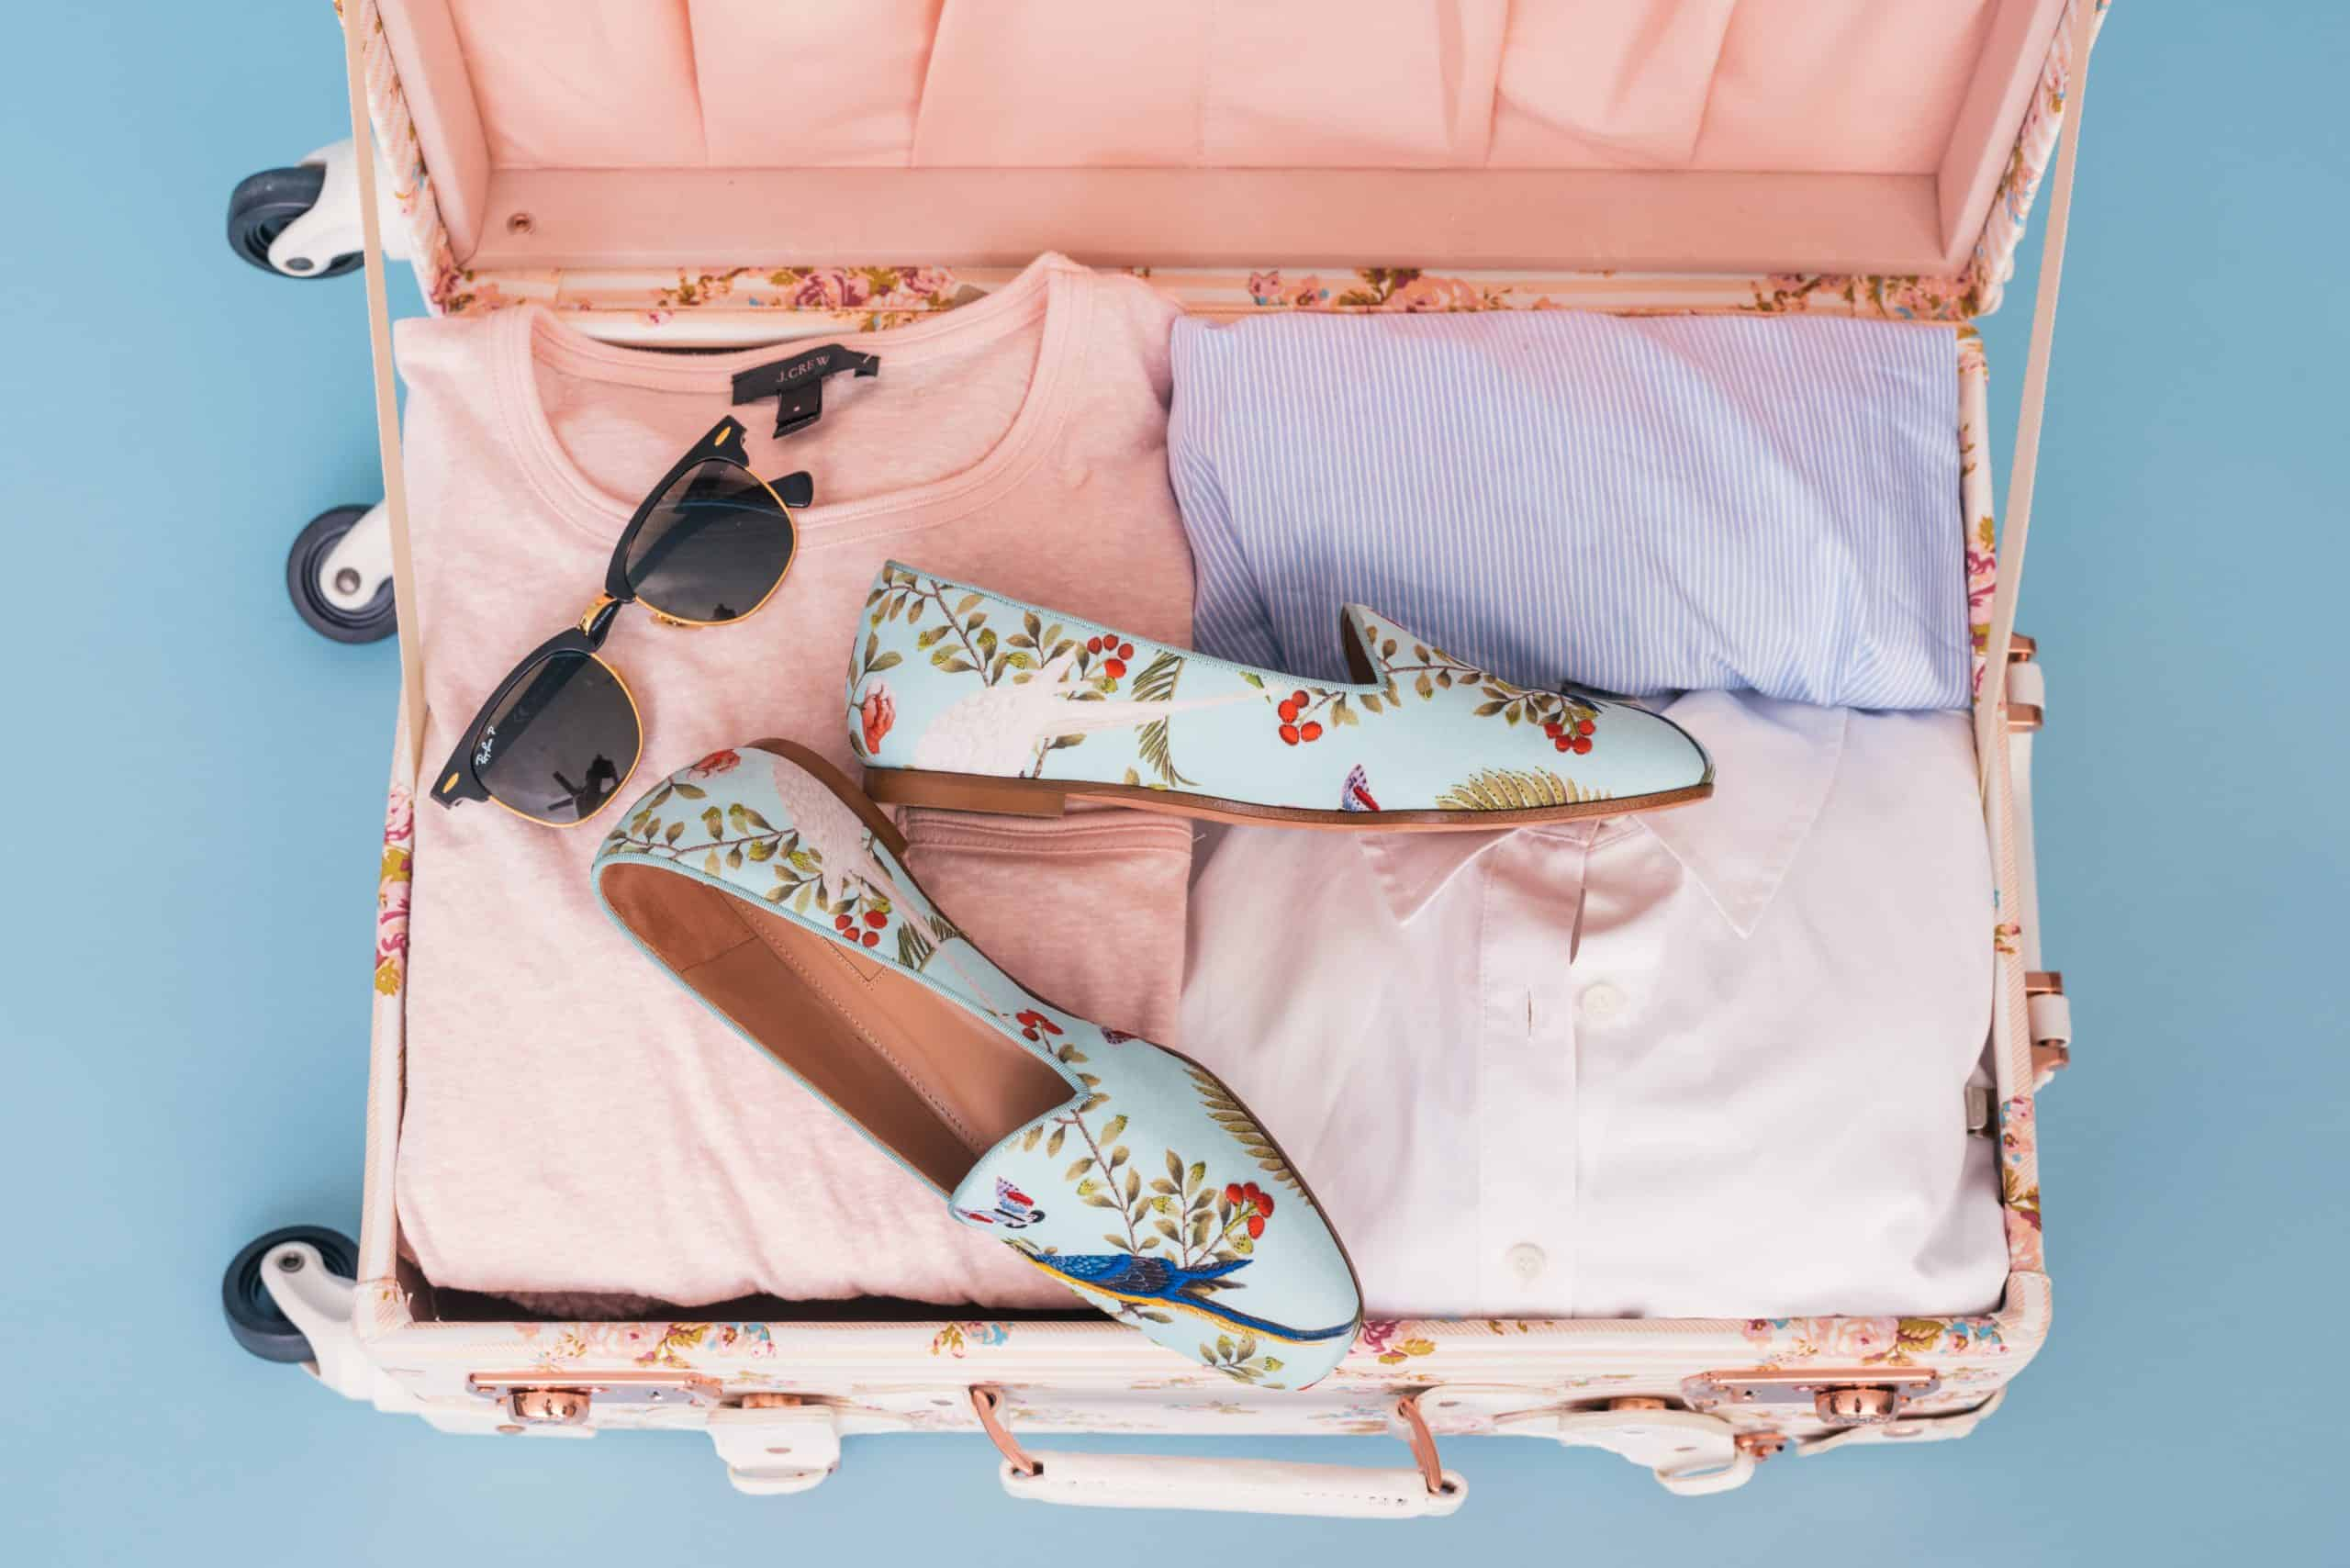 The best travel insurance will cover you for lost or delayed luggage